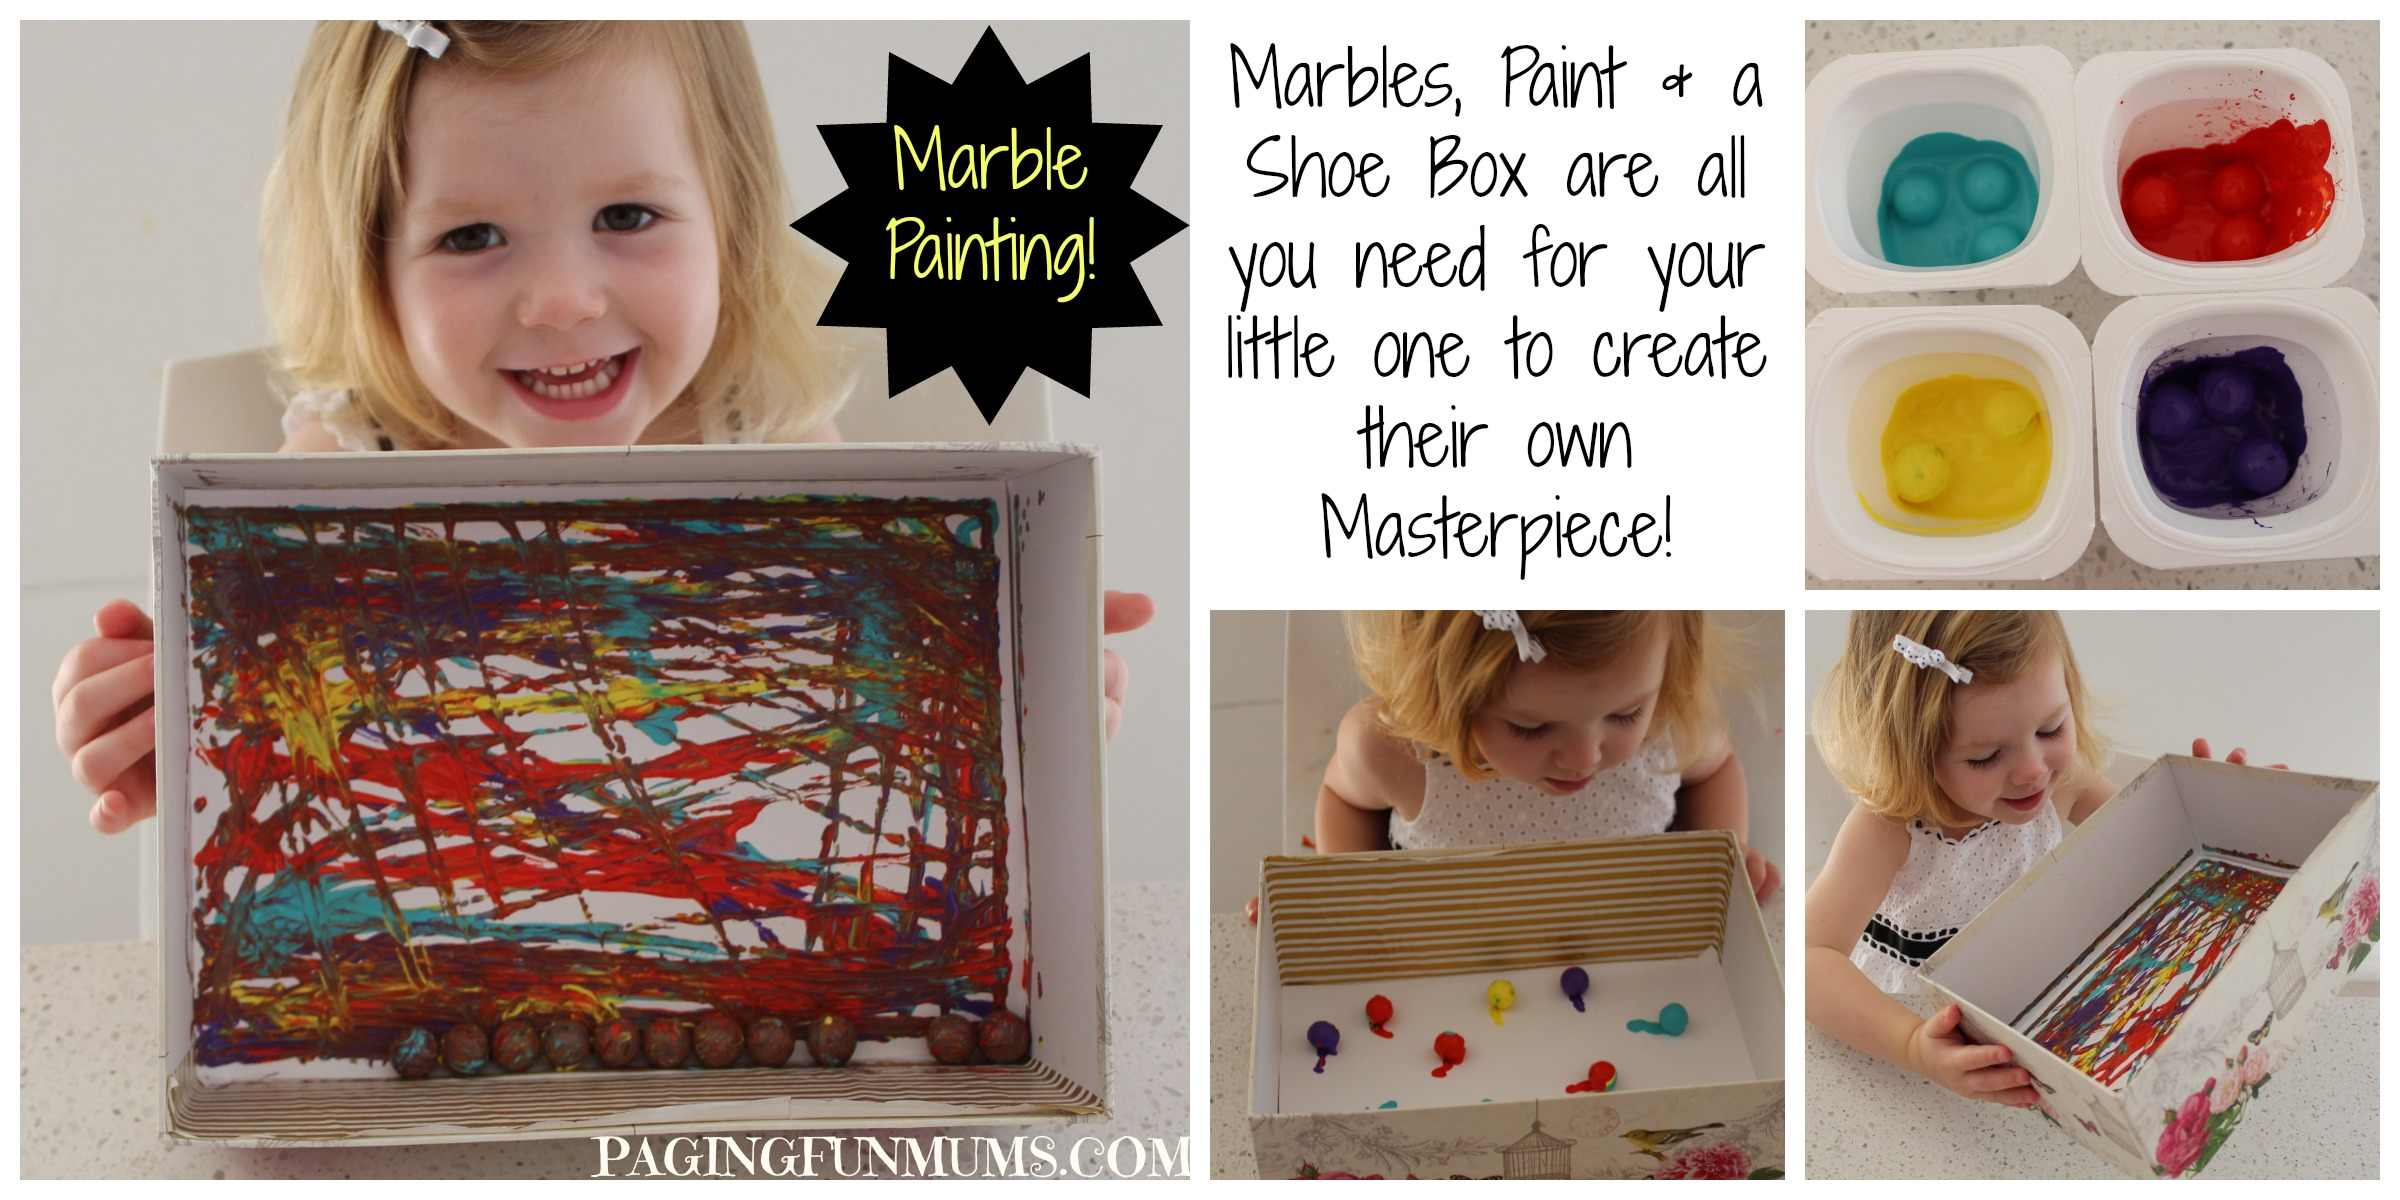 Painting with Marbles to create a MASTERPIECE